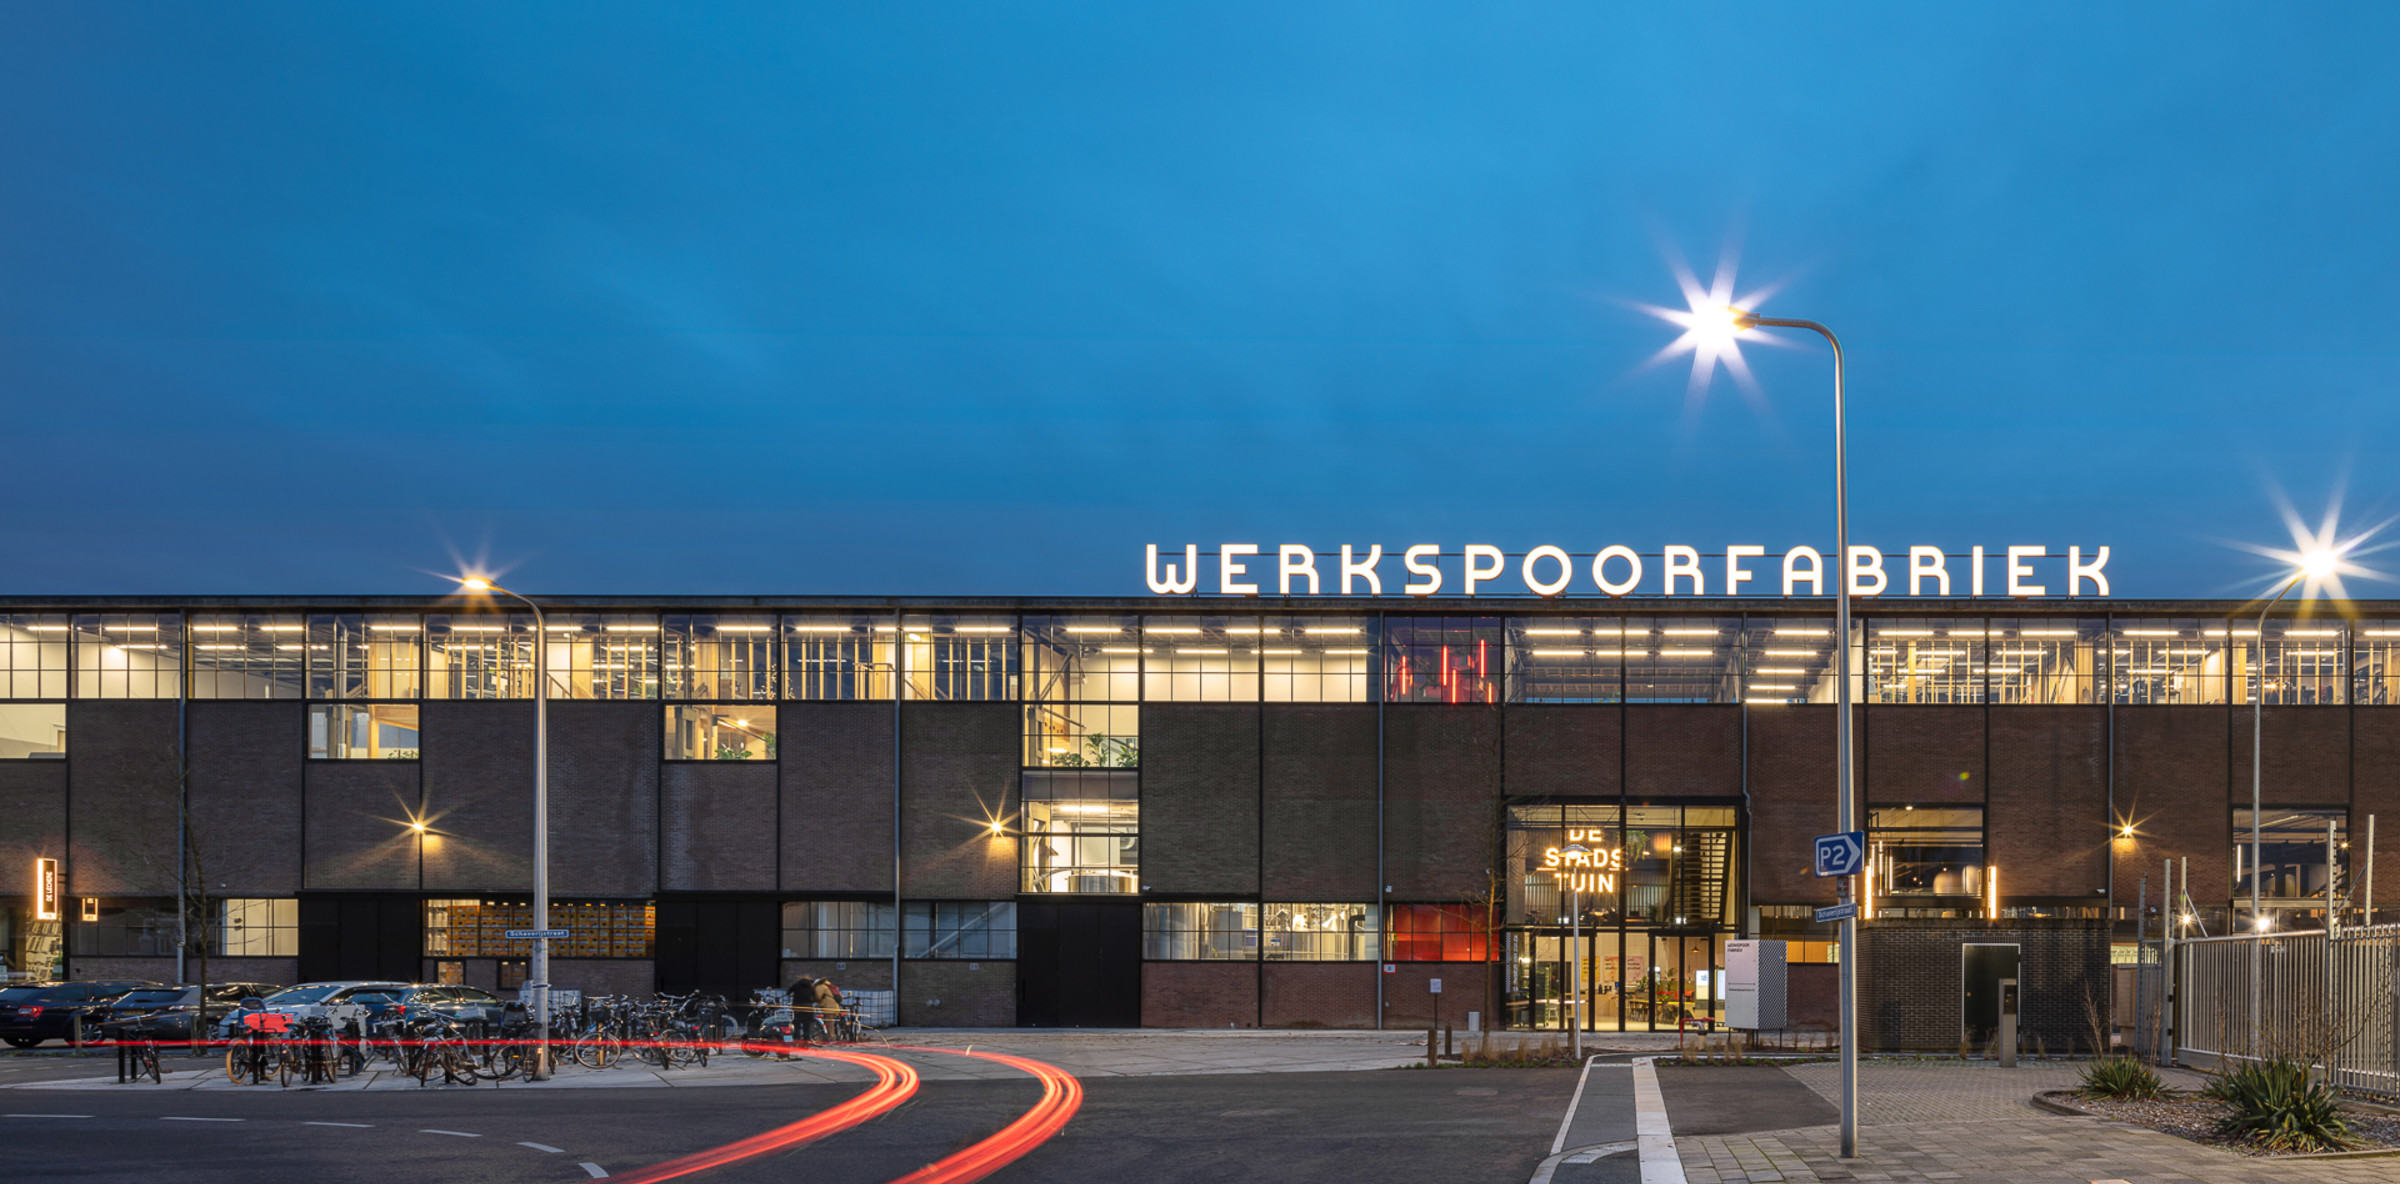 112_Zecc_Architecten-transformation-Werkspoor_factor.JPG